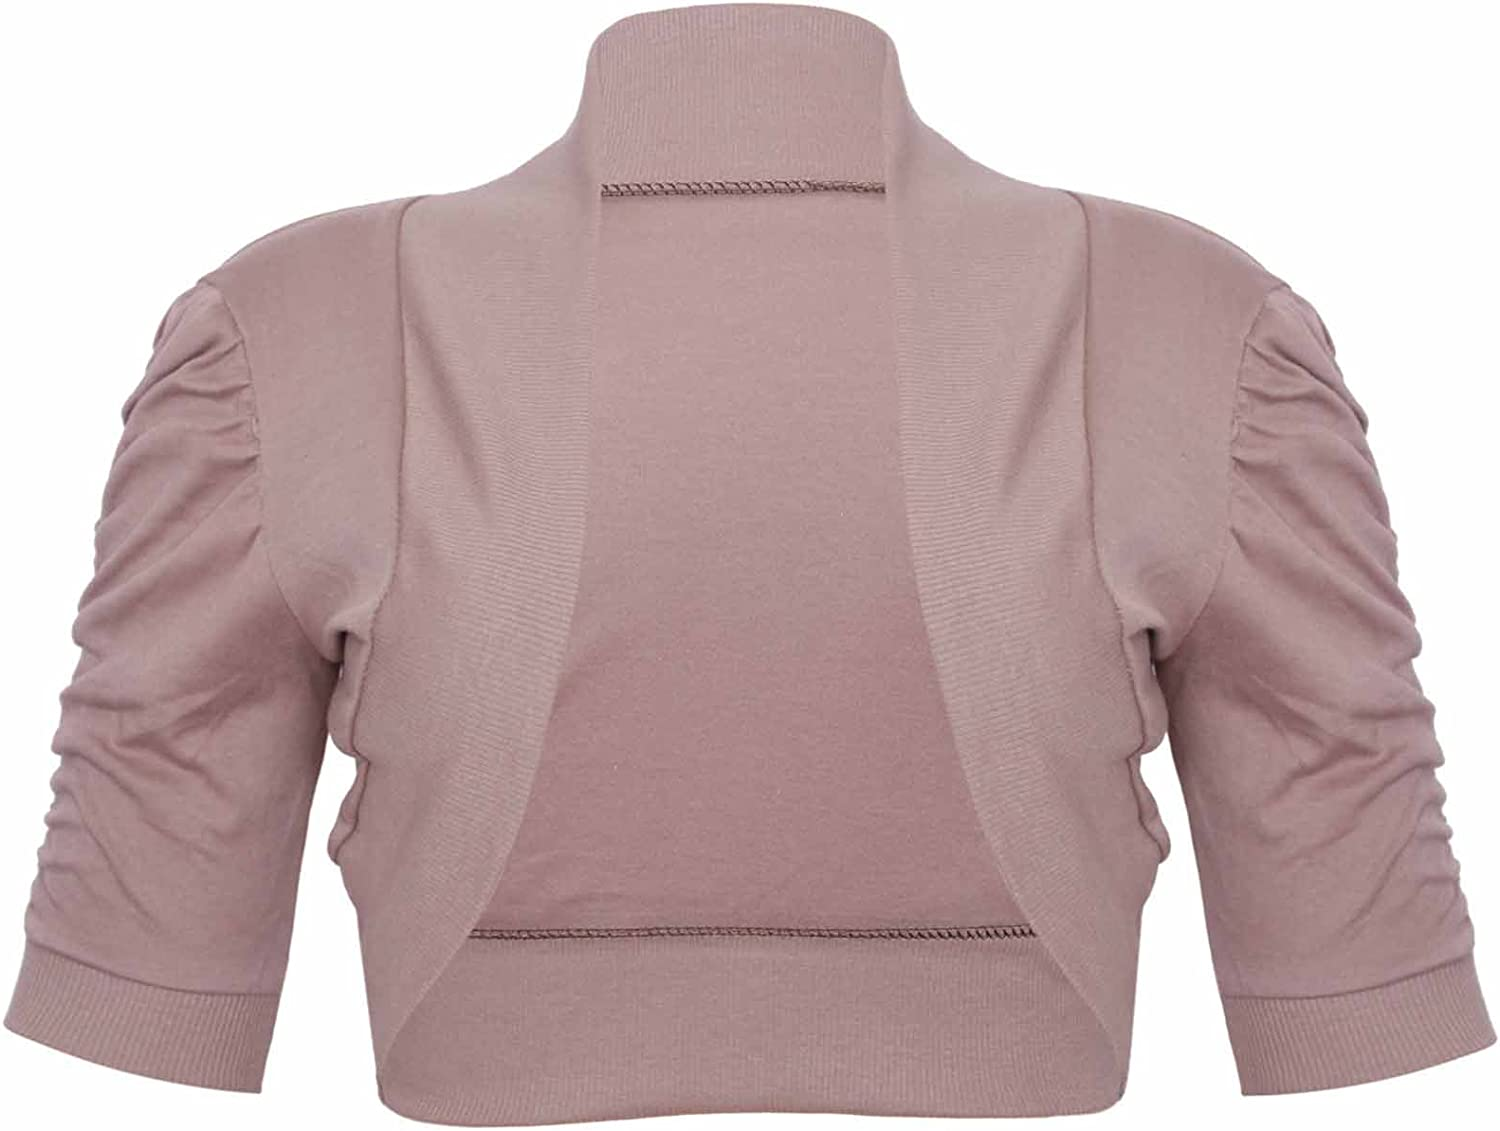 Womens Ribbed Ruched Gathered Short Sleeve Ladies Front Open Fit Cardigan Bolero Shrug Top